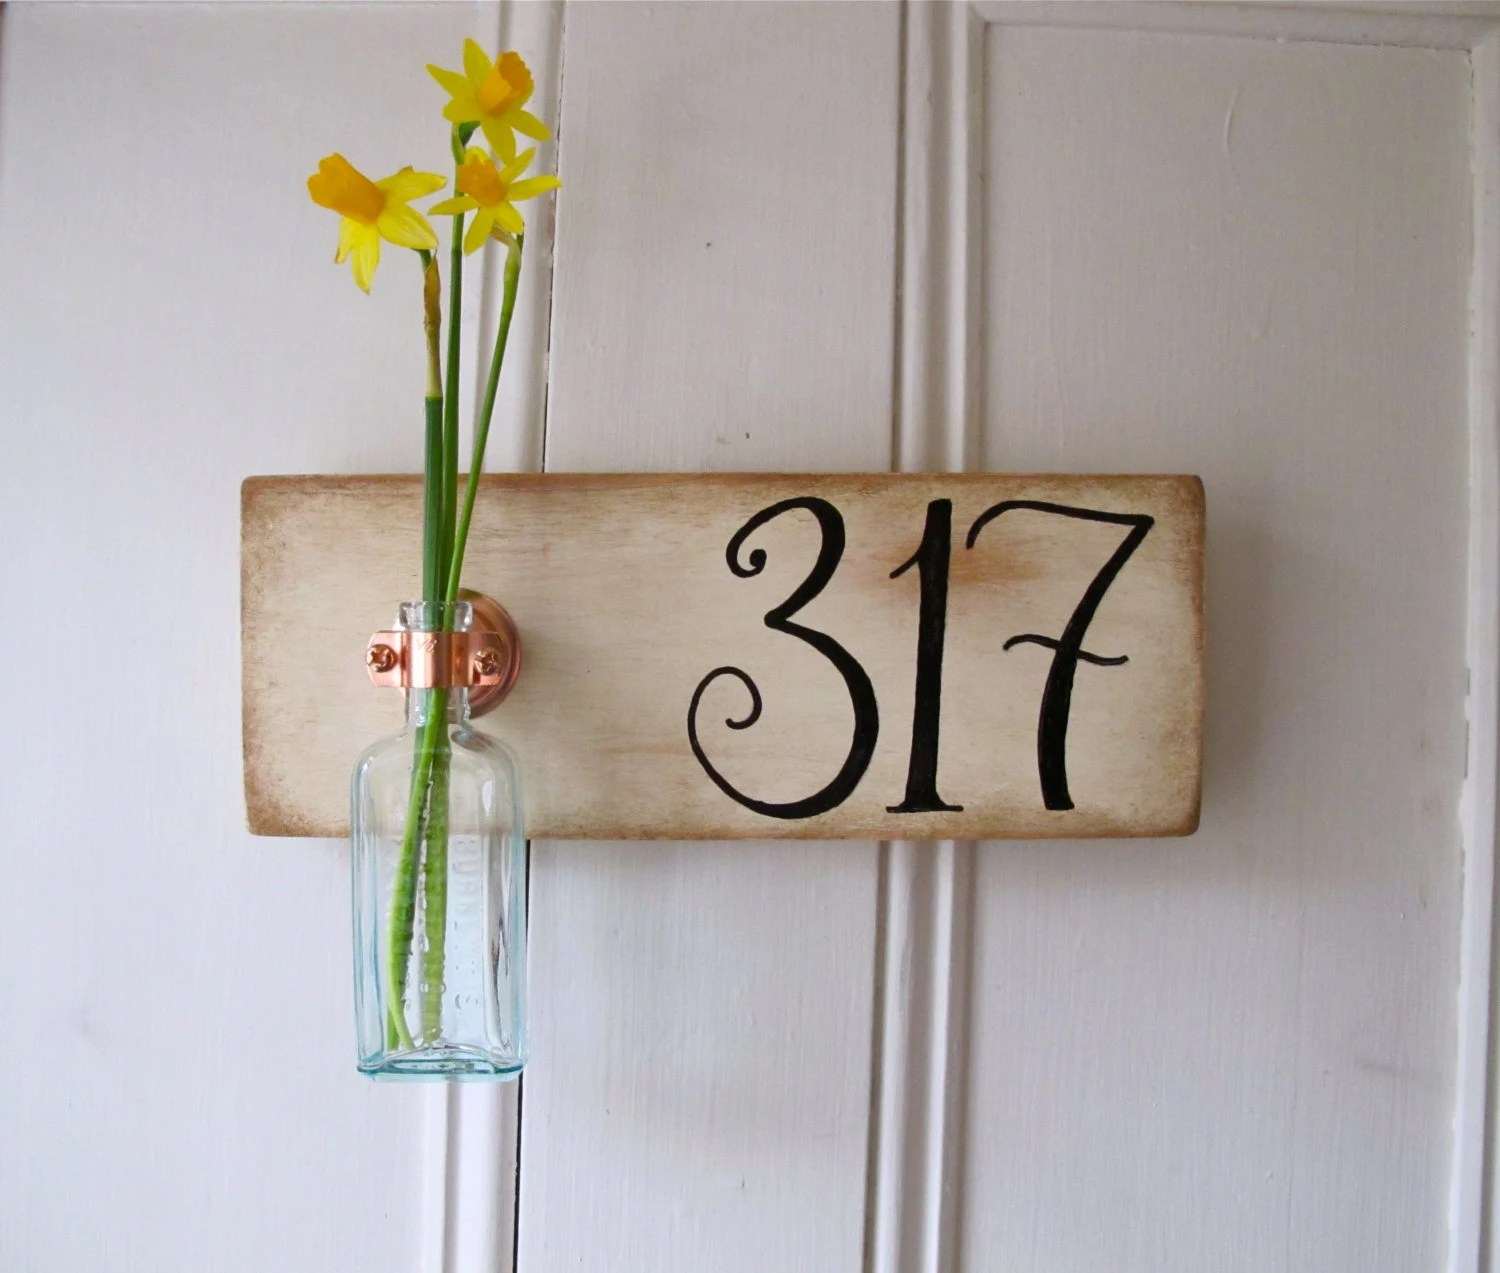 CUSTOM ORDER, House Number, Wall Flower Vase, Outdoor Decor, Signage, Wedding Date, New Home, Antique Bottle, Copper Hanger, Housewarming